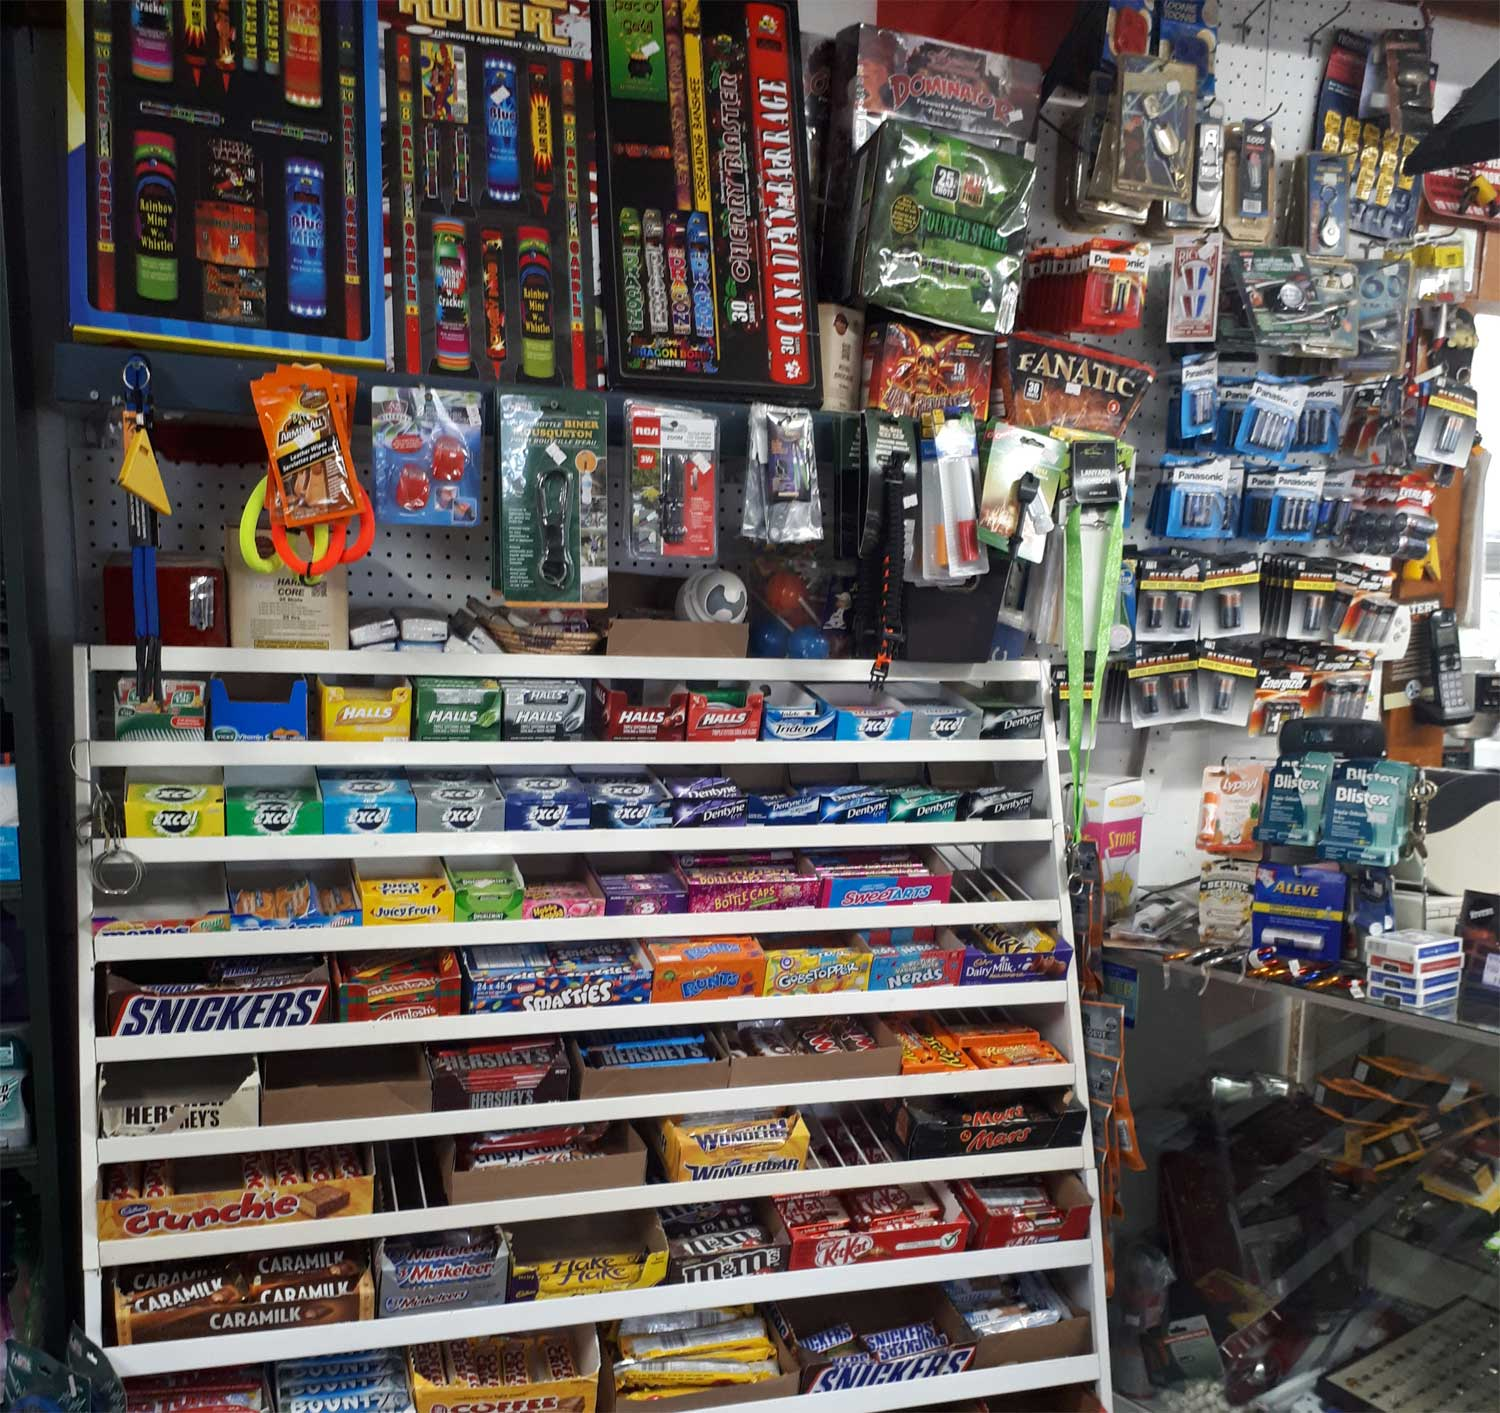 Fireworks, batteries, playing cards, lighters, chap stick.